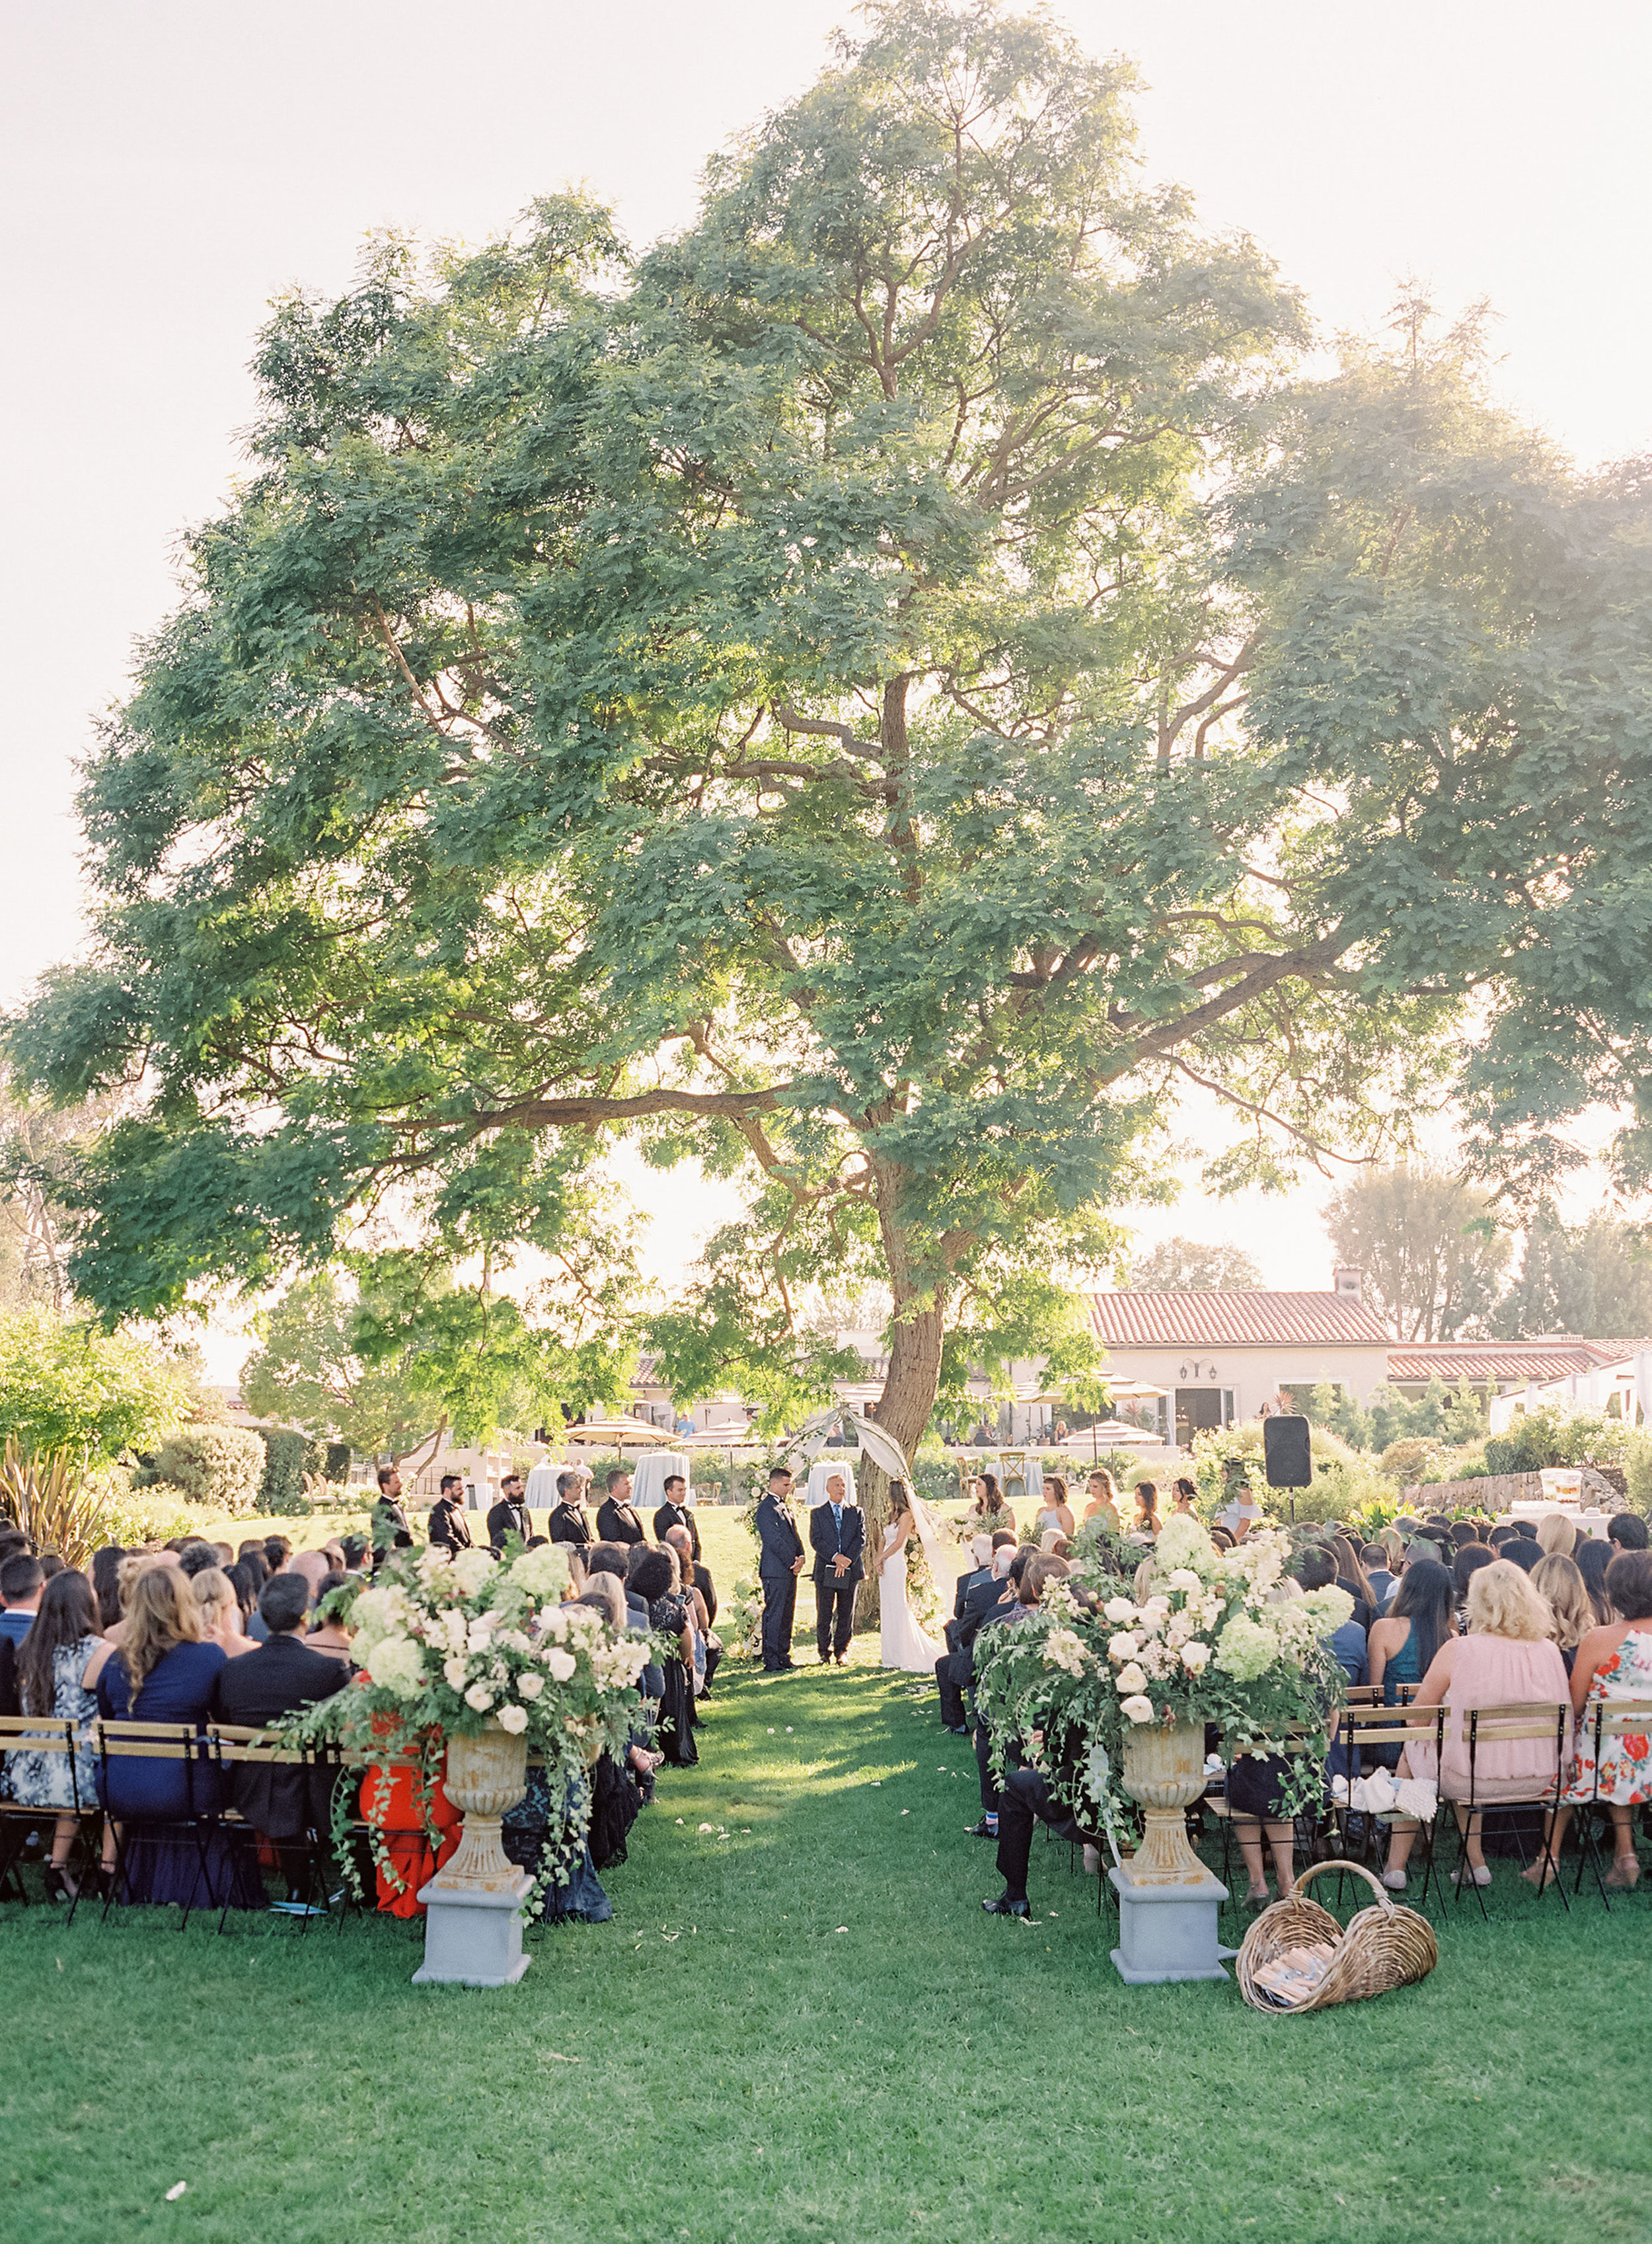 Inn-at-Rancho-Santa-Fe-Wedding-514.jpg